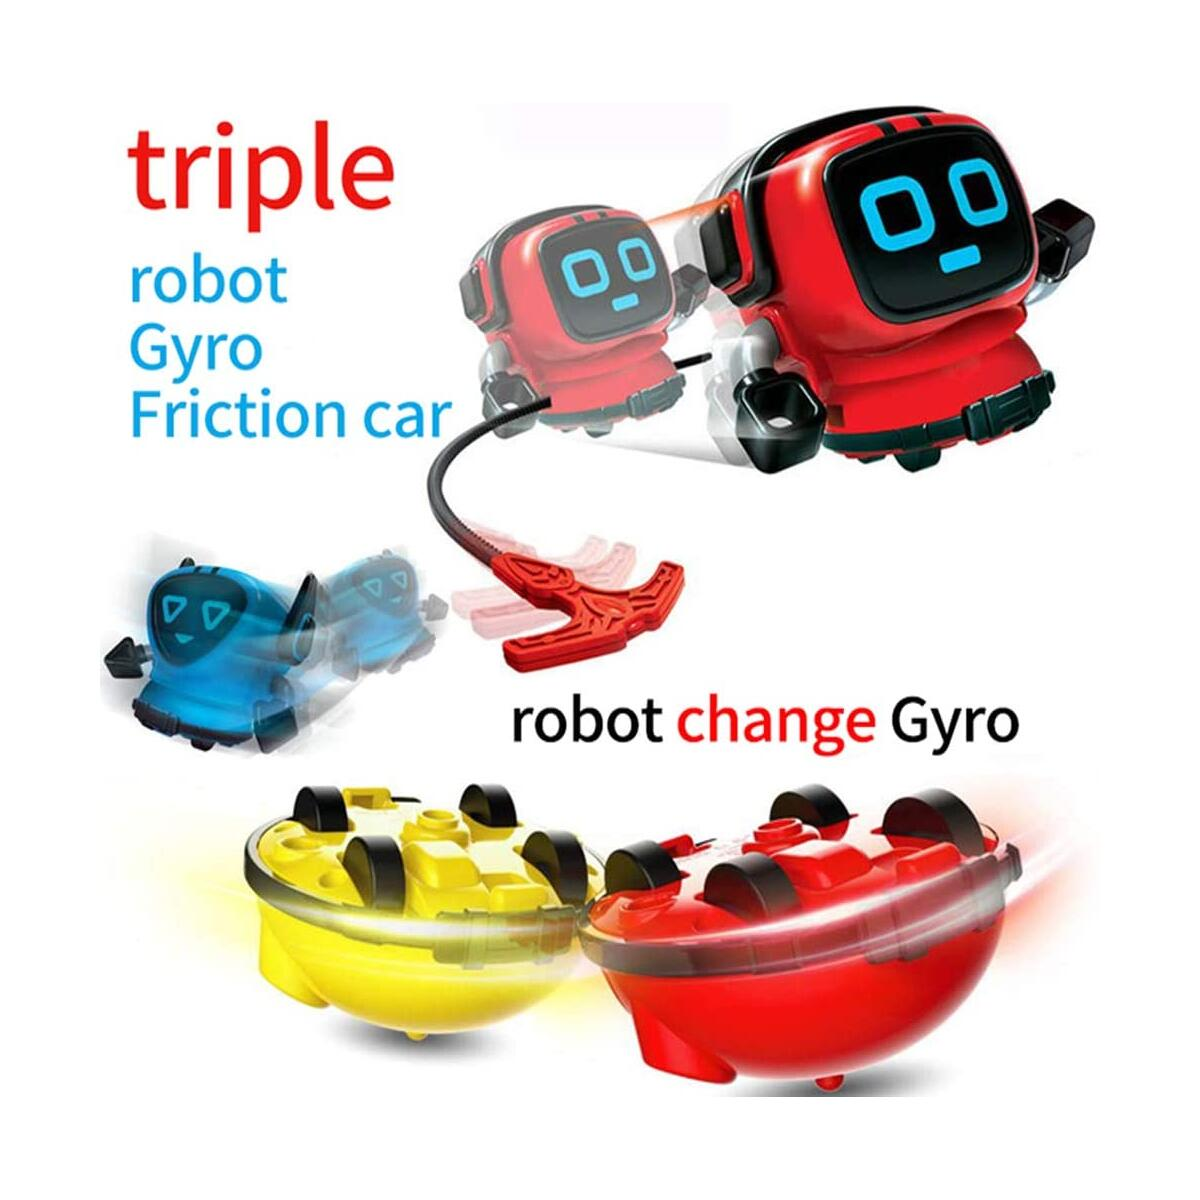 Spinning Top Toys Spin Tops Multi Function Mini Robot Toys gyro Toys for Kid Novelty Spinning Tops Gyro Battling Game Tops Robot Gyro Pull Spinning in Wind Up Gyro Toy for Kid Boy Girl Gifts for Kid